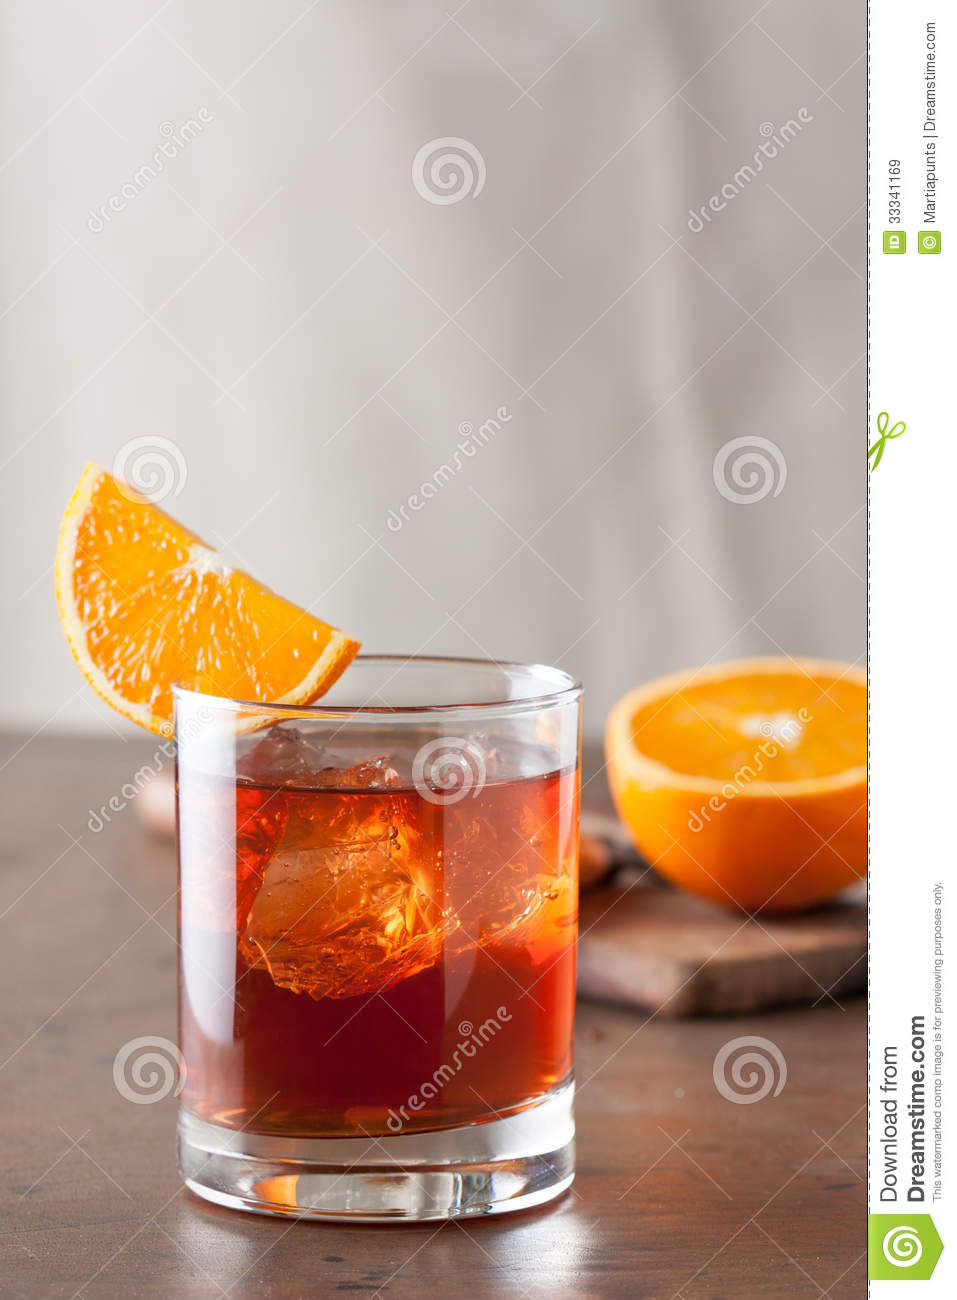 Classic Negroni Cocktail On Wooden Table Royalty Free Stock Images ...